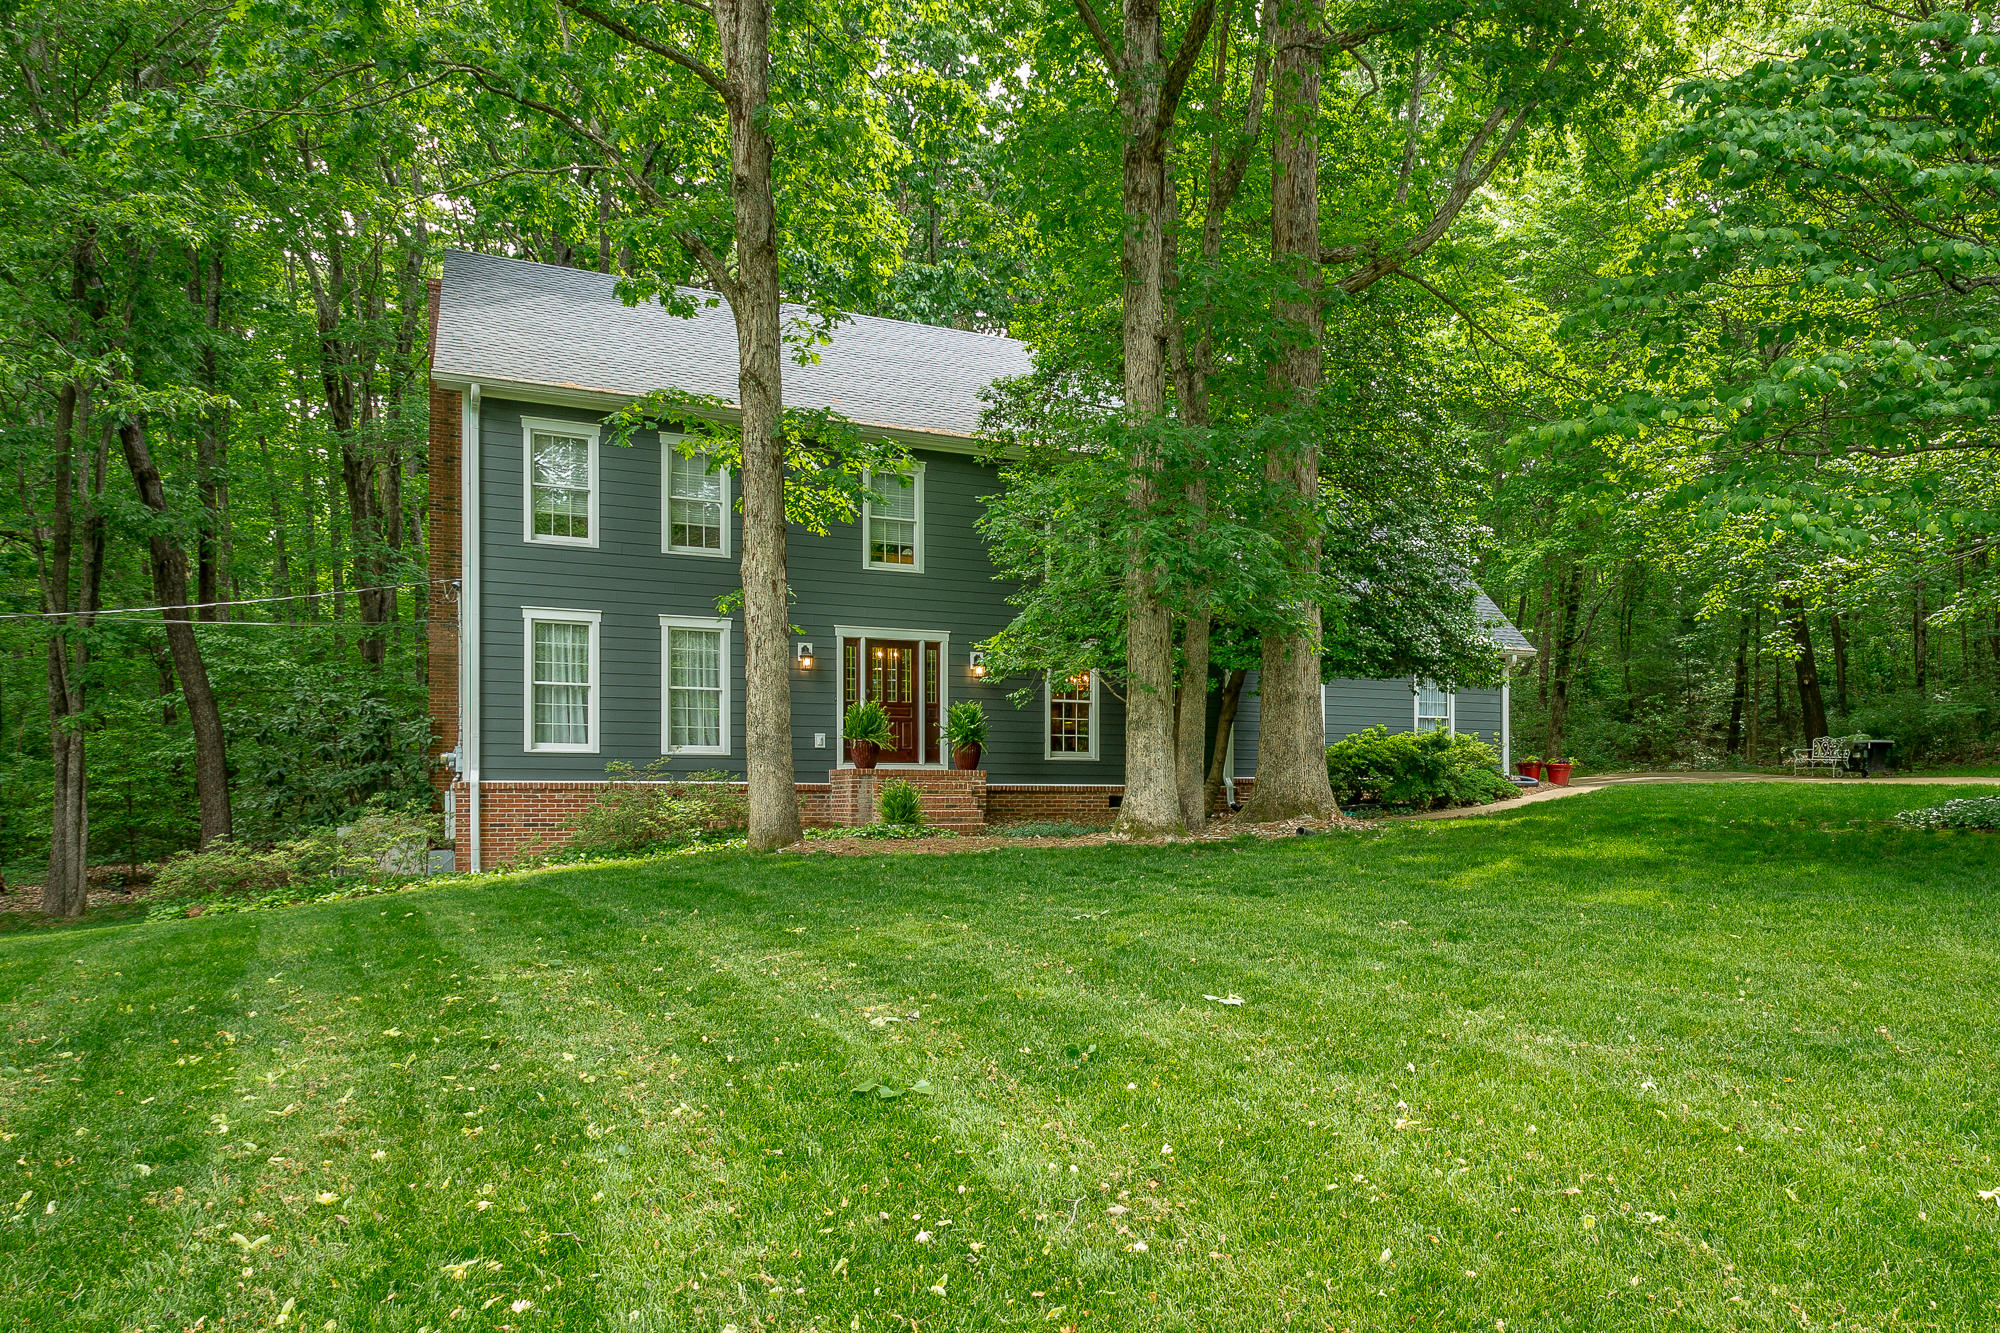 3008 Hobblebush Ln, Signal Mountain, TN 37377